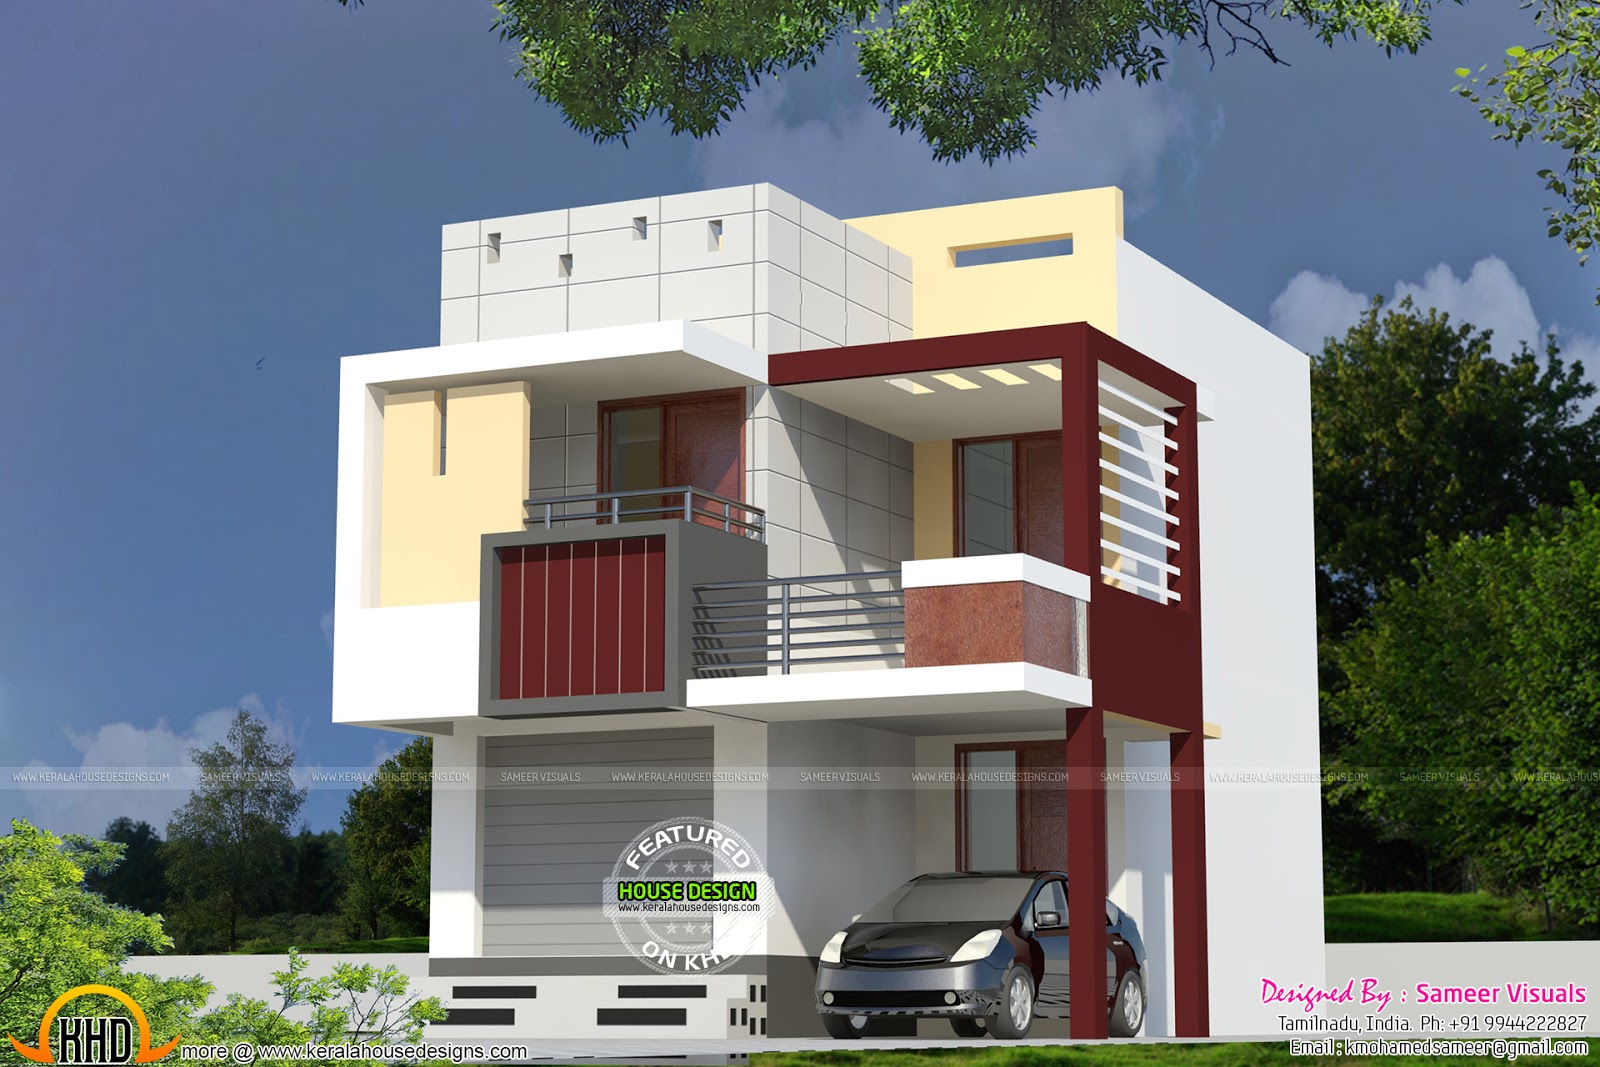 Very small double storied house kerala home design and floor plans - Home design for small place ...